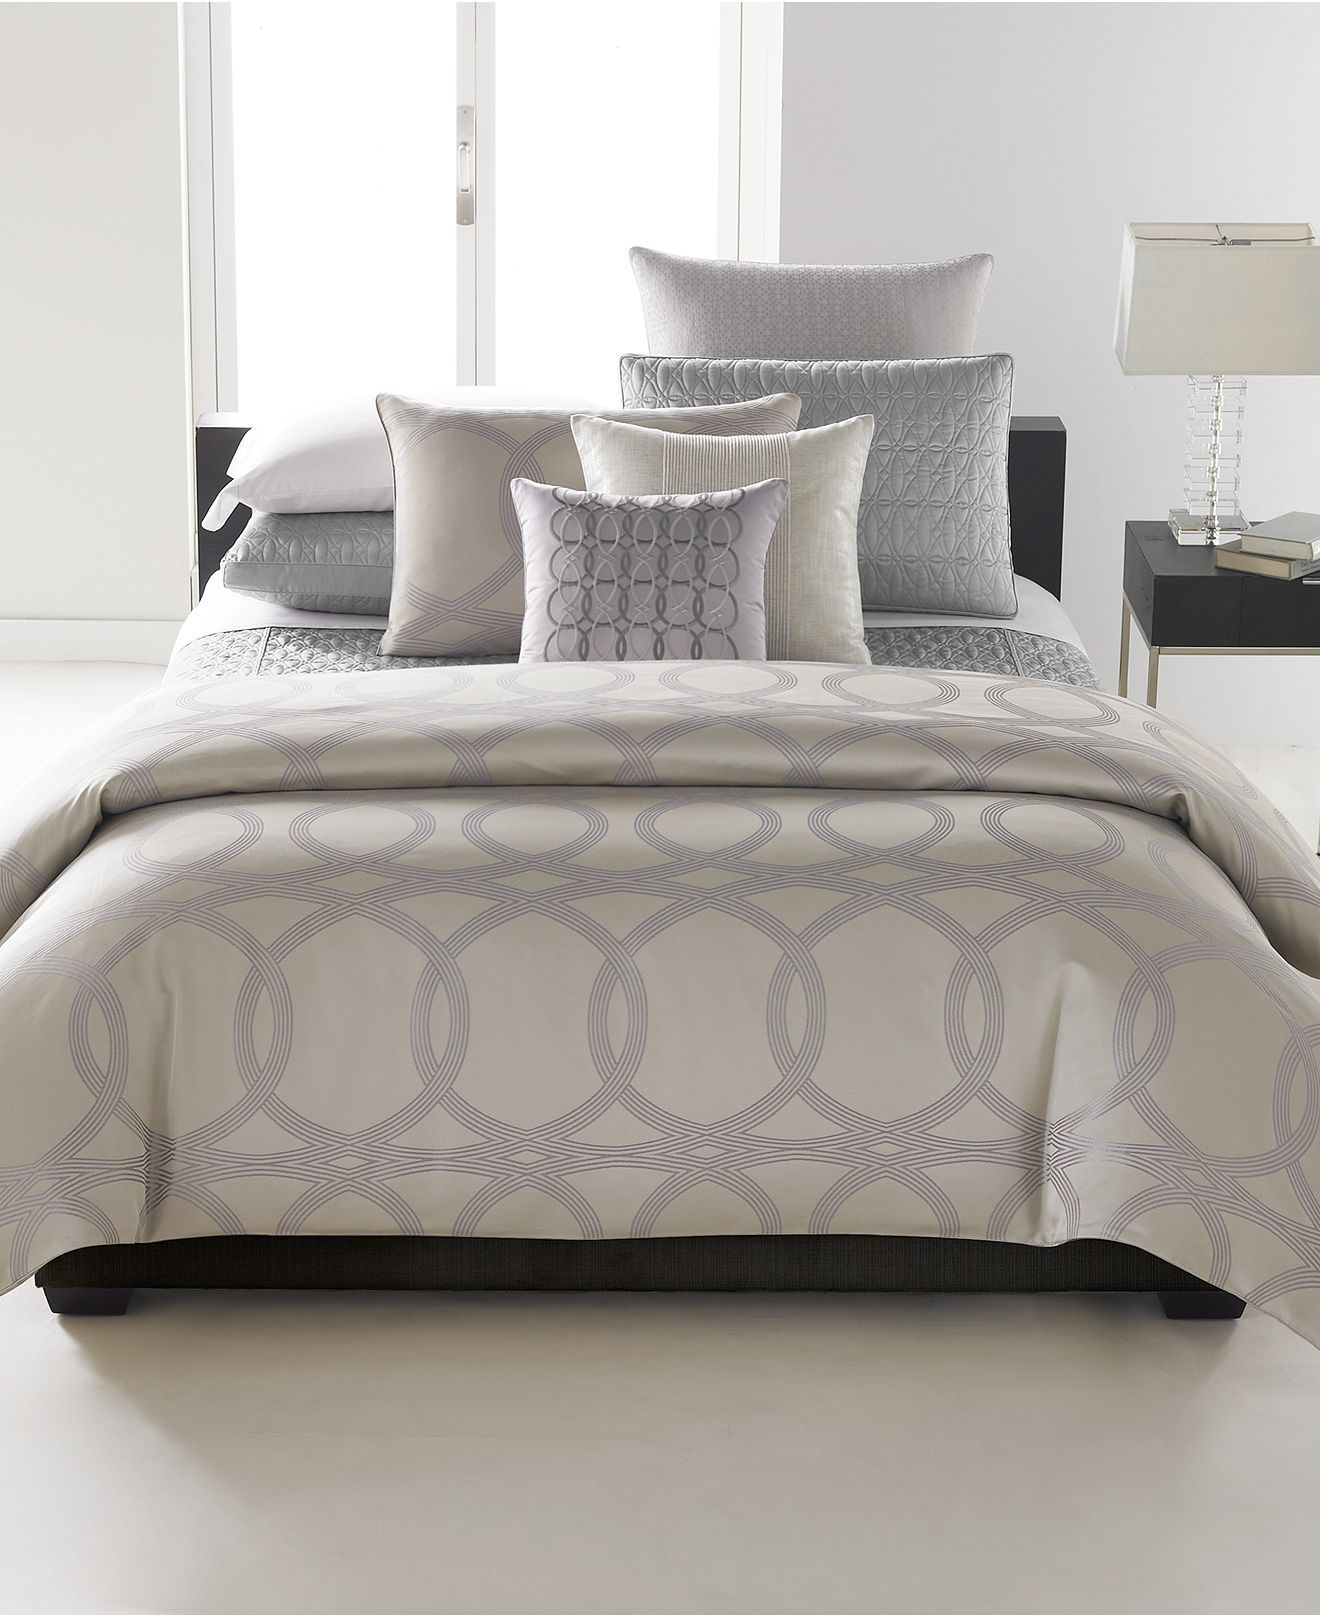 Hotel Collection Bedding Calligraphy - Collections Bed & Bath Macy'